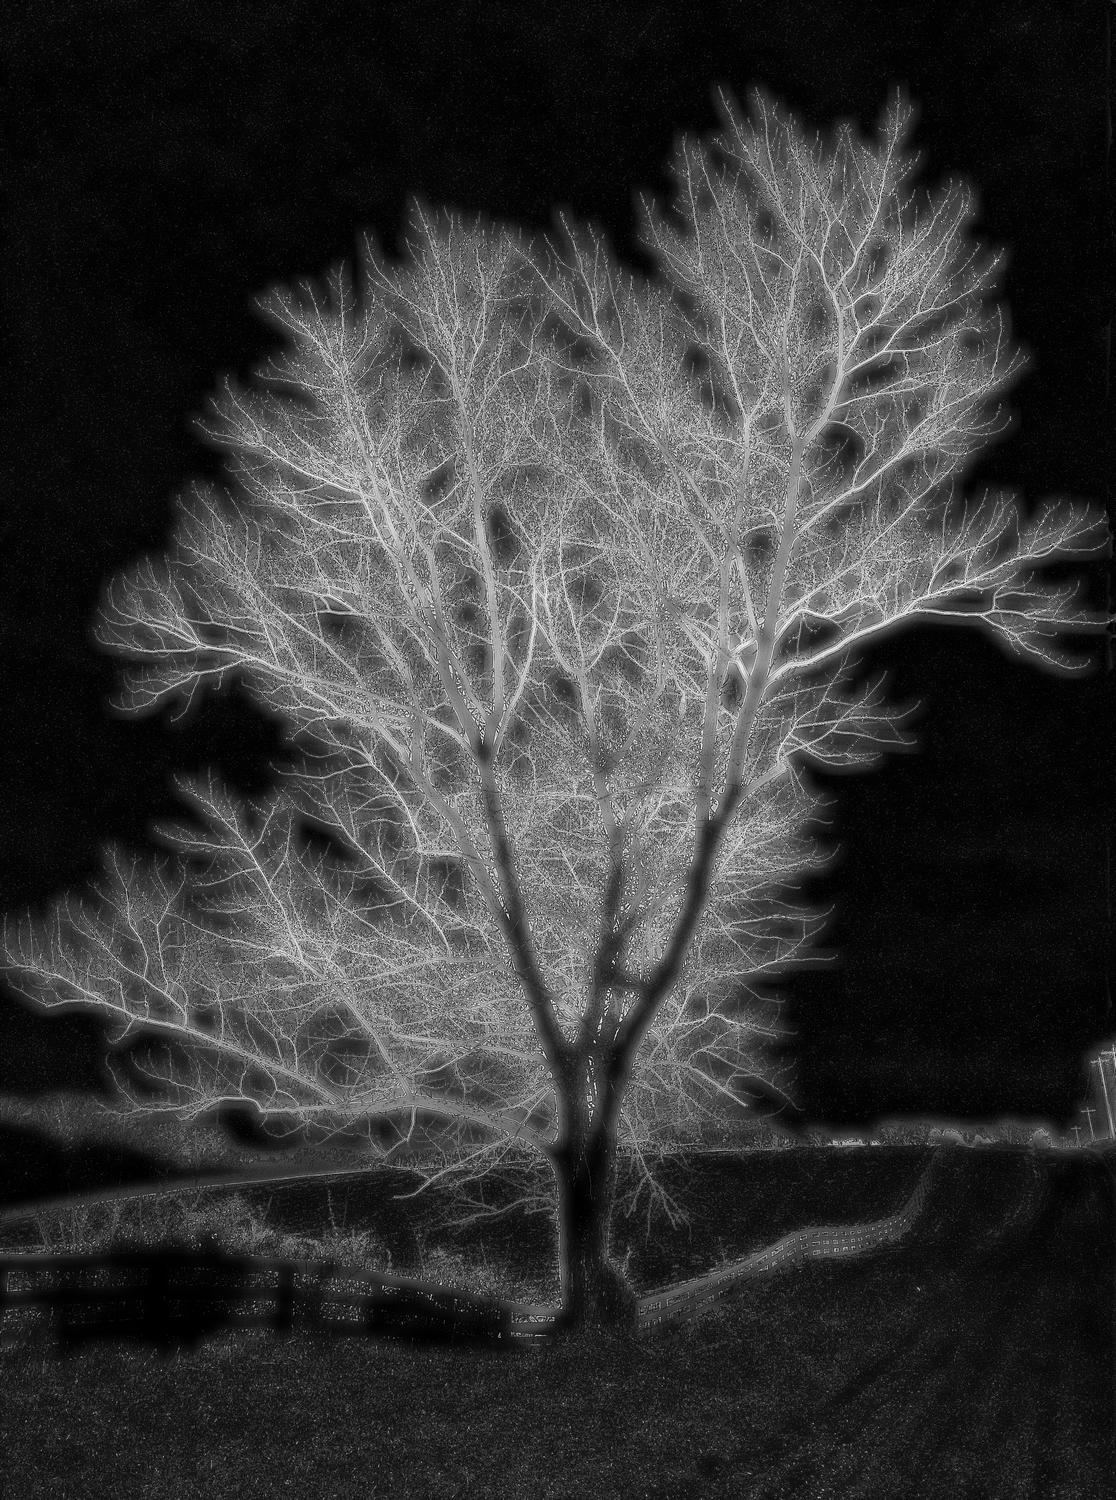 glowing tree on a dark background - Day is night - Techno-Impressionist Museum - Techno-Impressionism - art - beautiful - photo photography picture - by Tony Karp